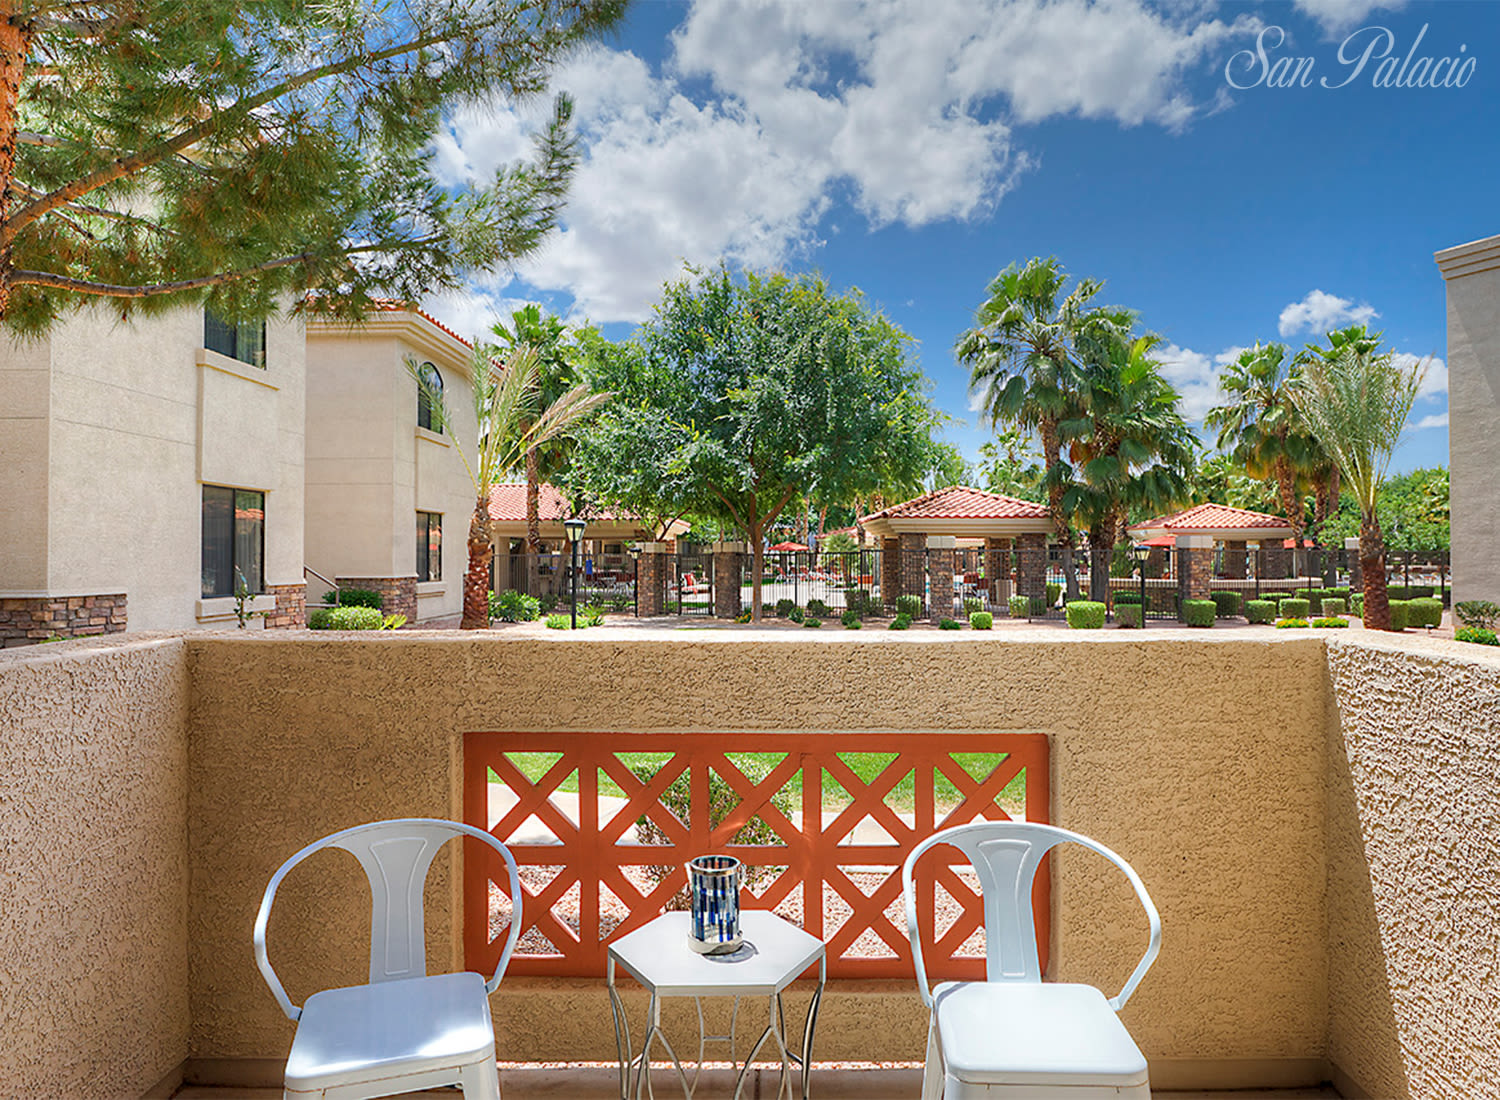 San Palacio apartments in Chandler, Arizona